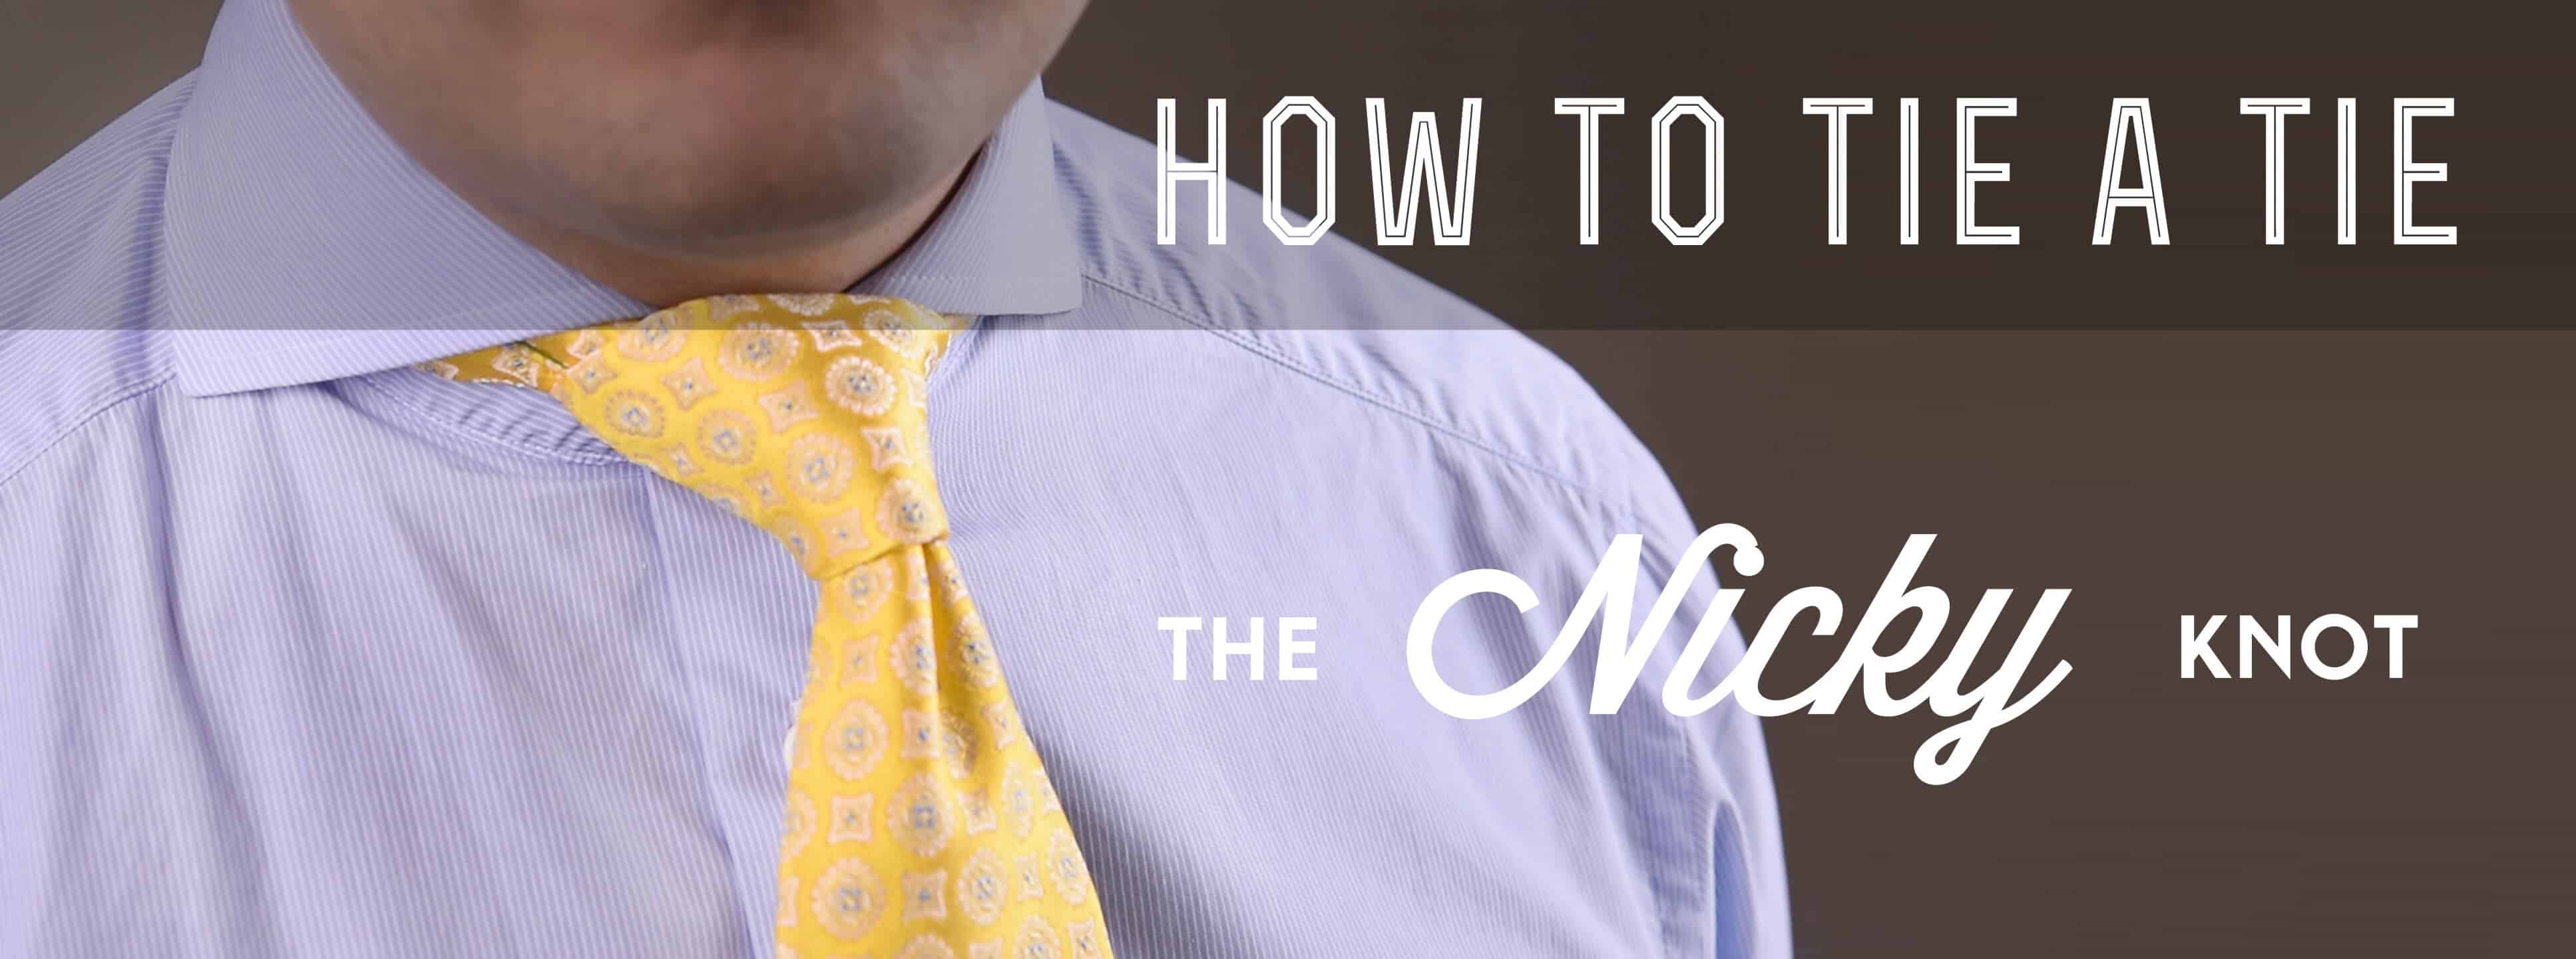 How To Tie The Nicky Knot